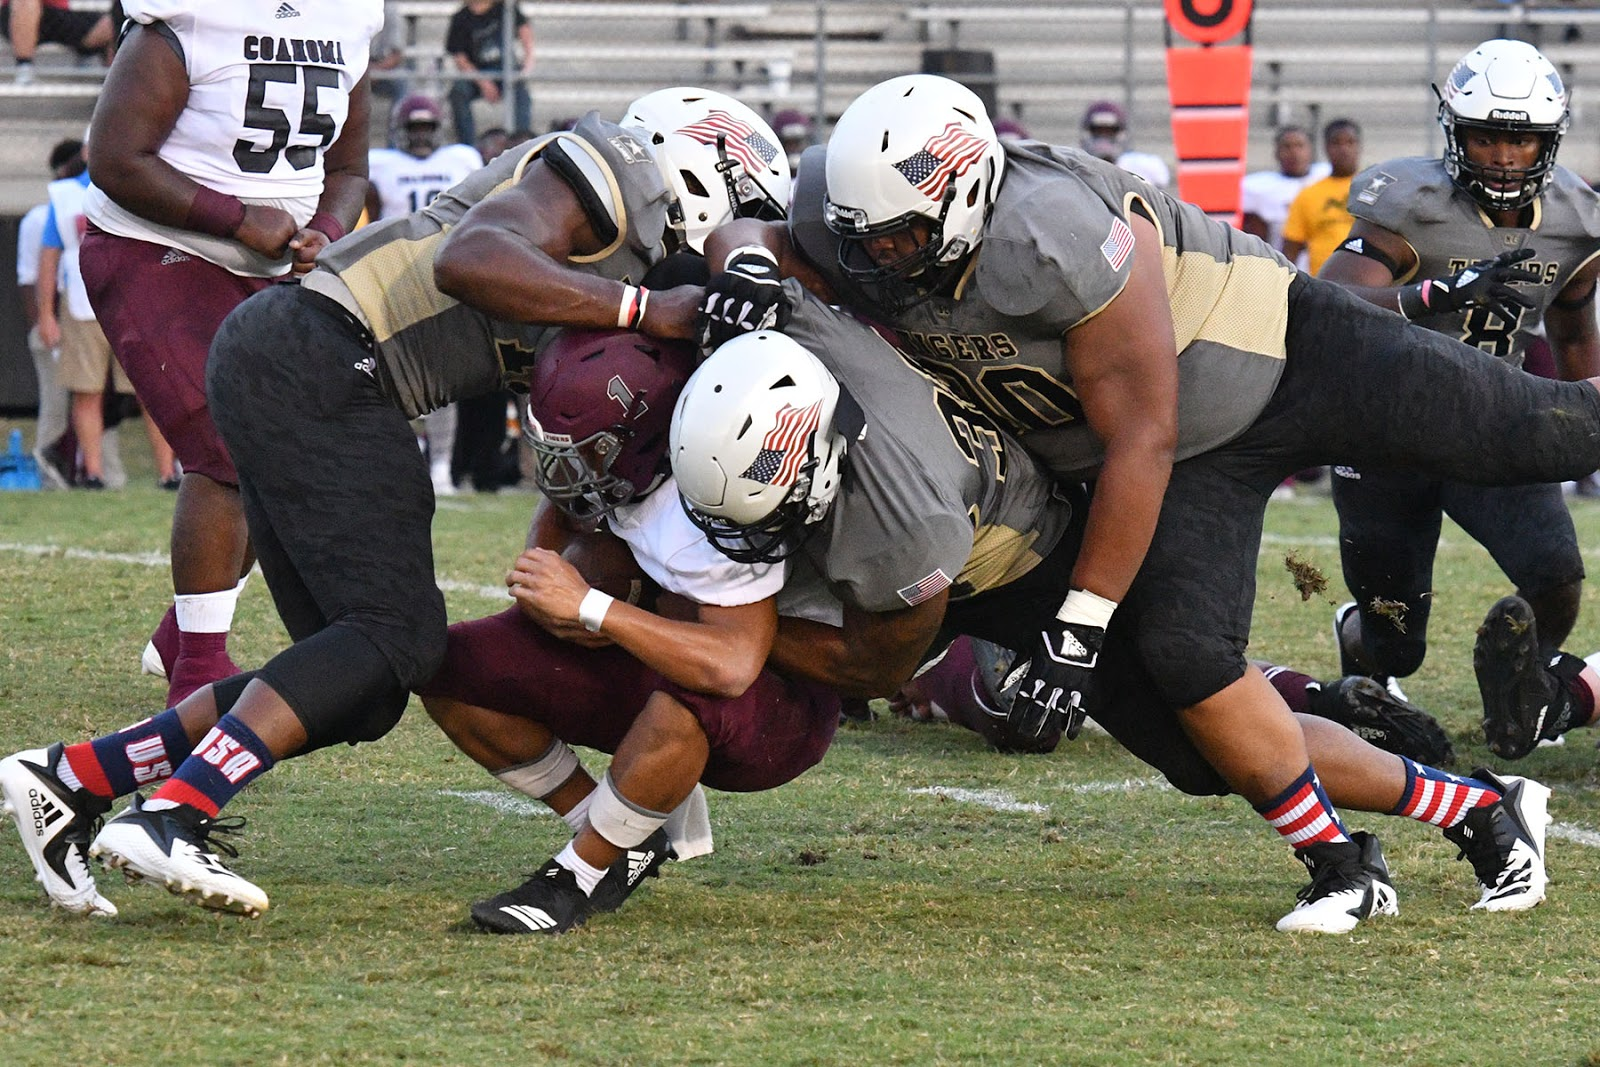 the northeast mississippi community college football team reaches the midway point of the 2018 campaign by renewing hostilities with its long time rival